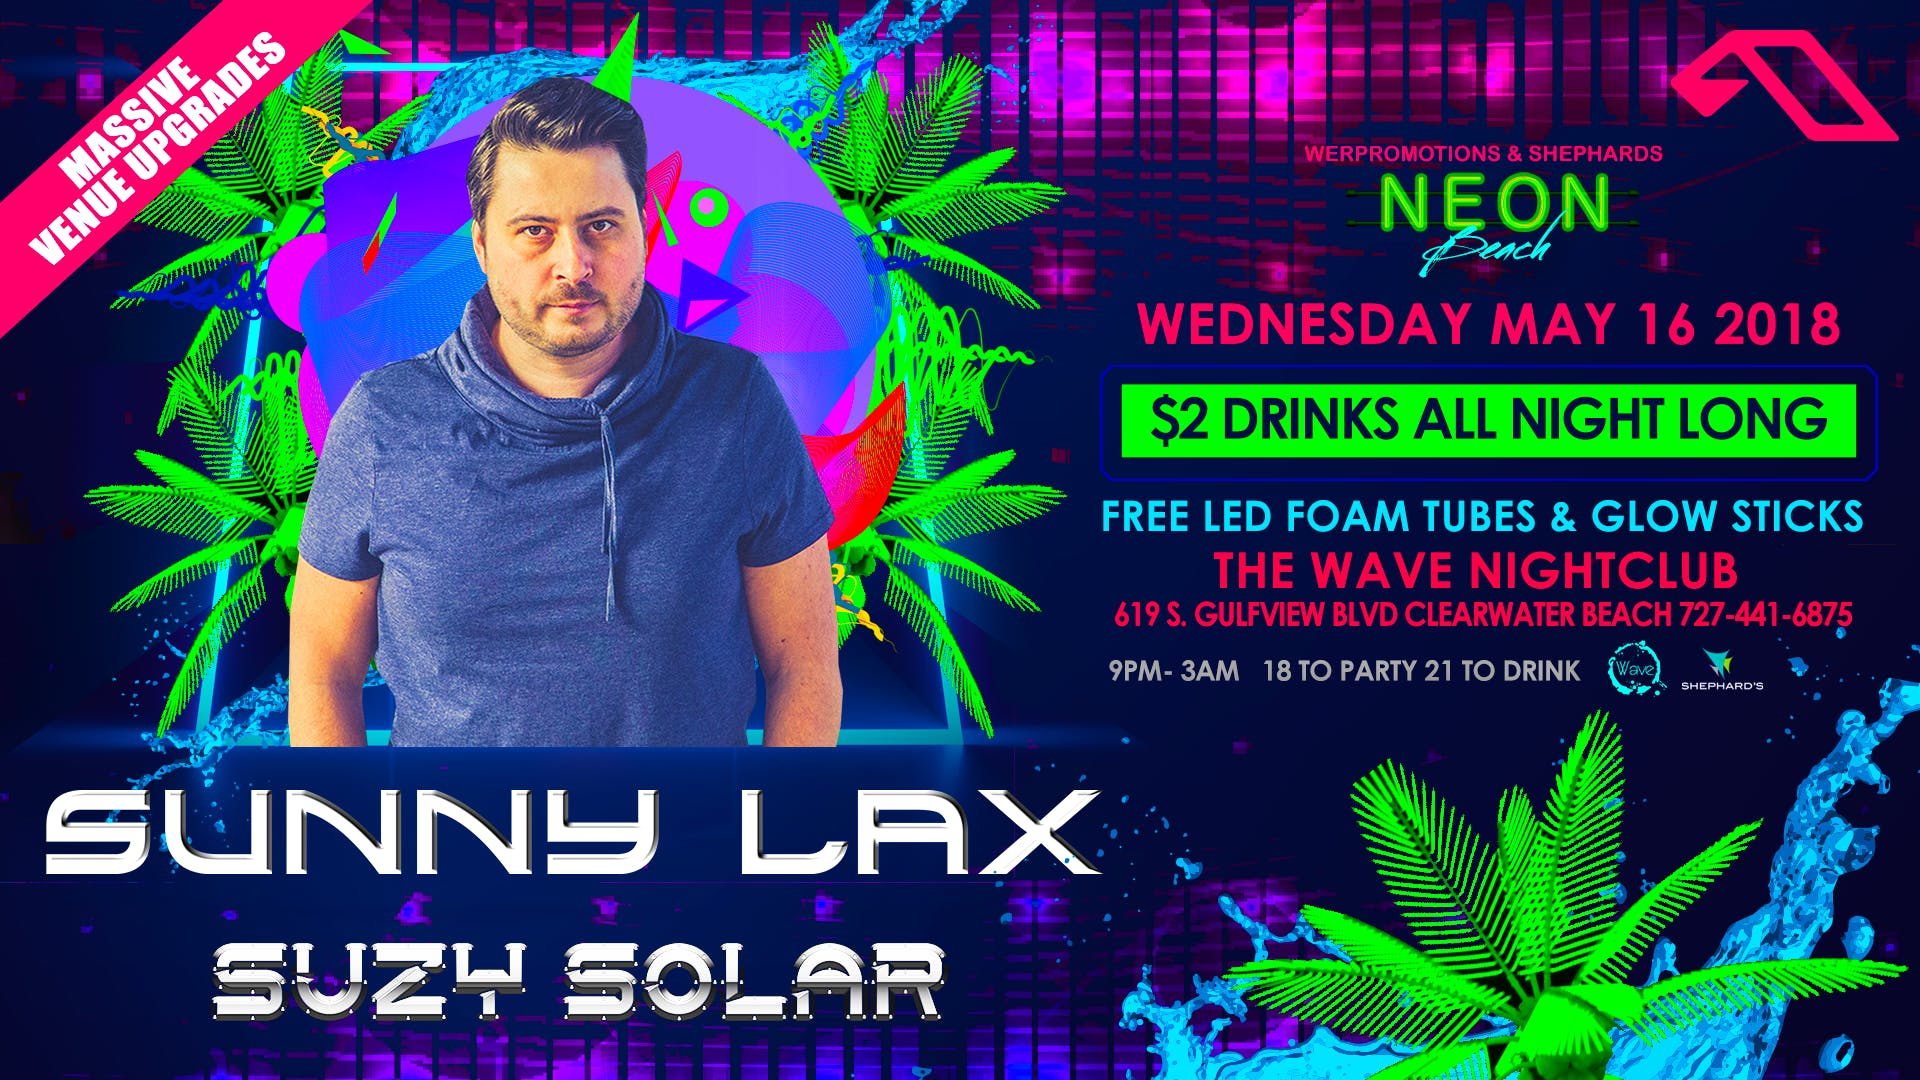 Sunny Lax from Anjunabeats W/ Suzy Solar at Neon beach $2 drinks all